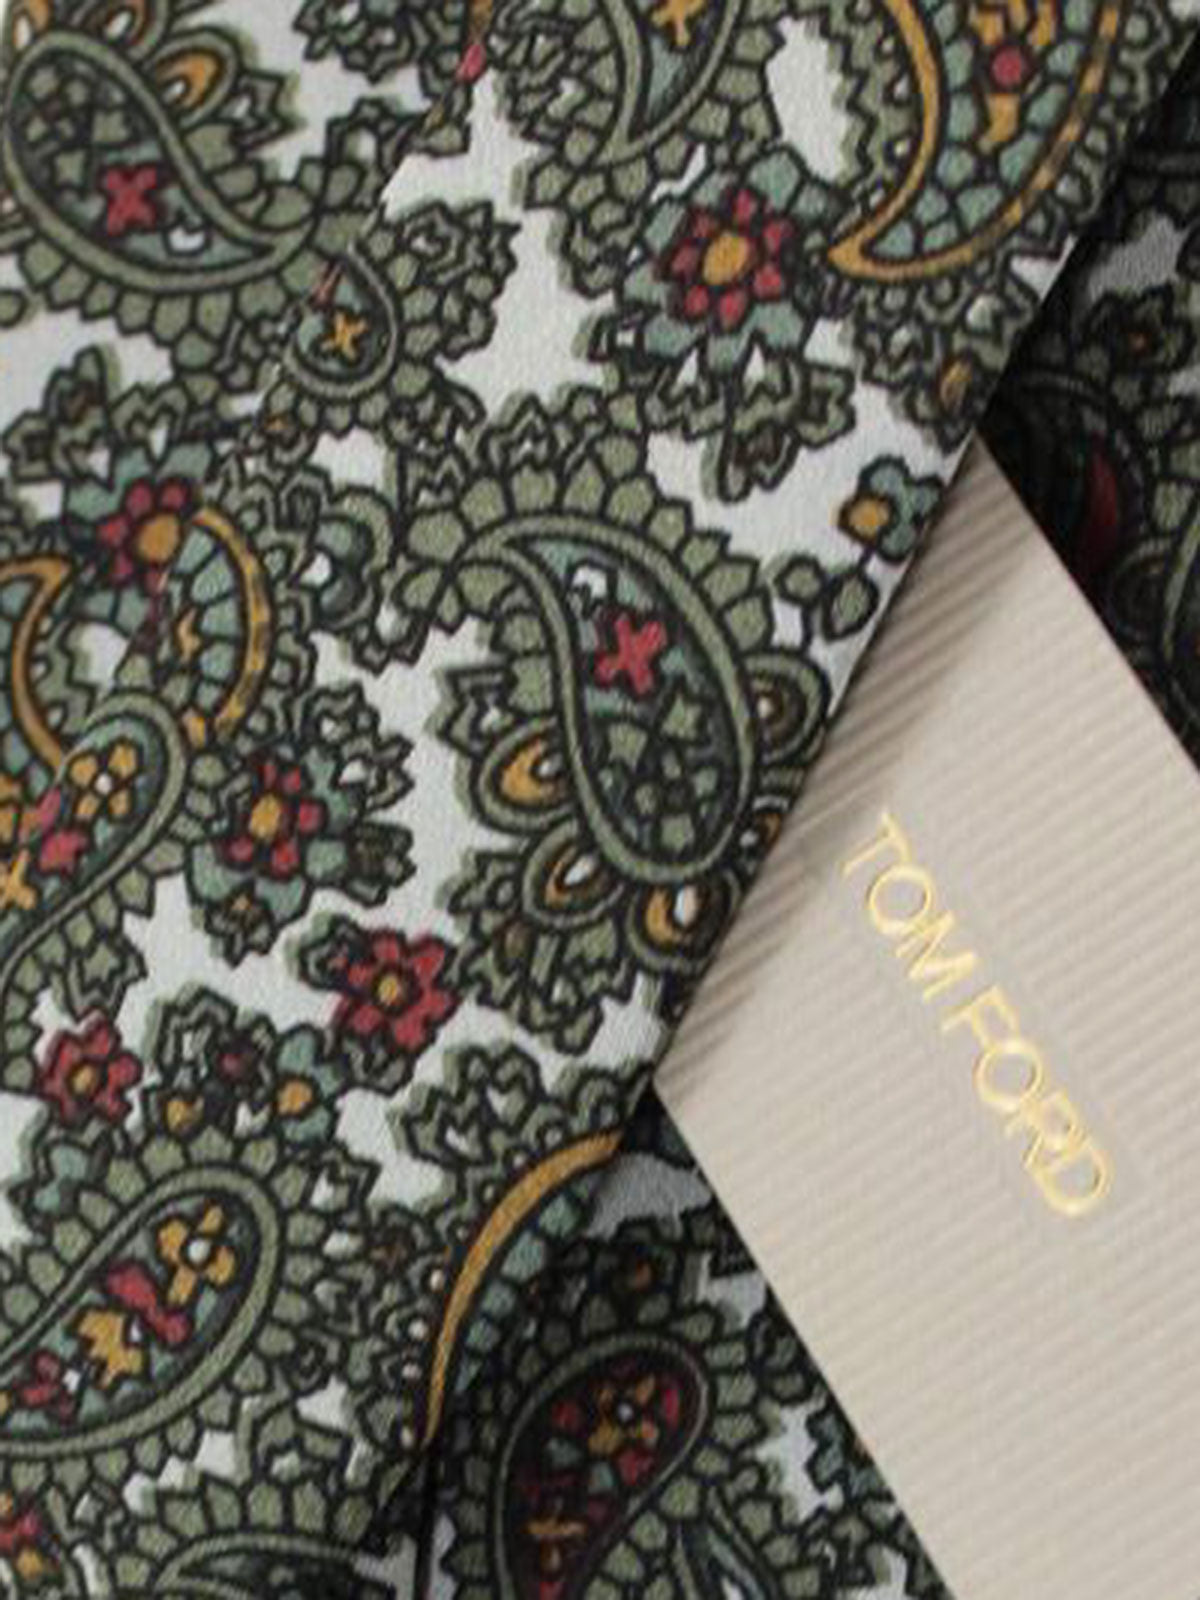 Tom Ford Tie Gray Forest Green Paisley